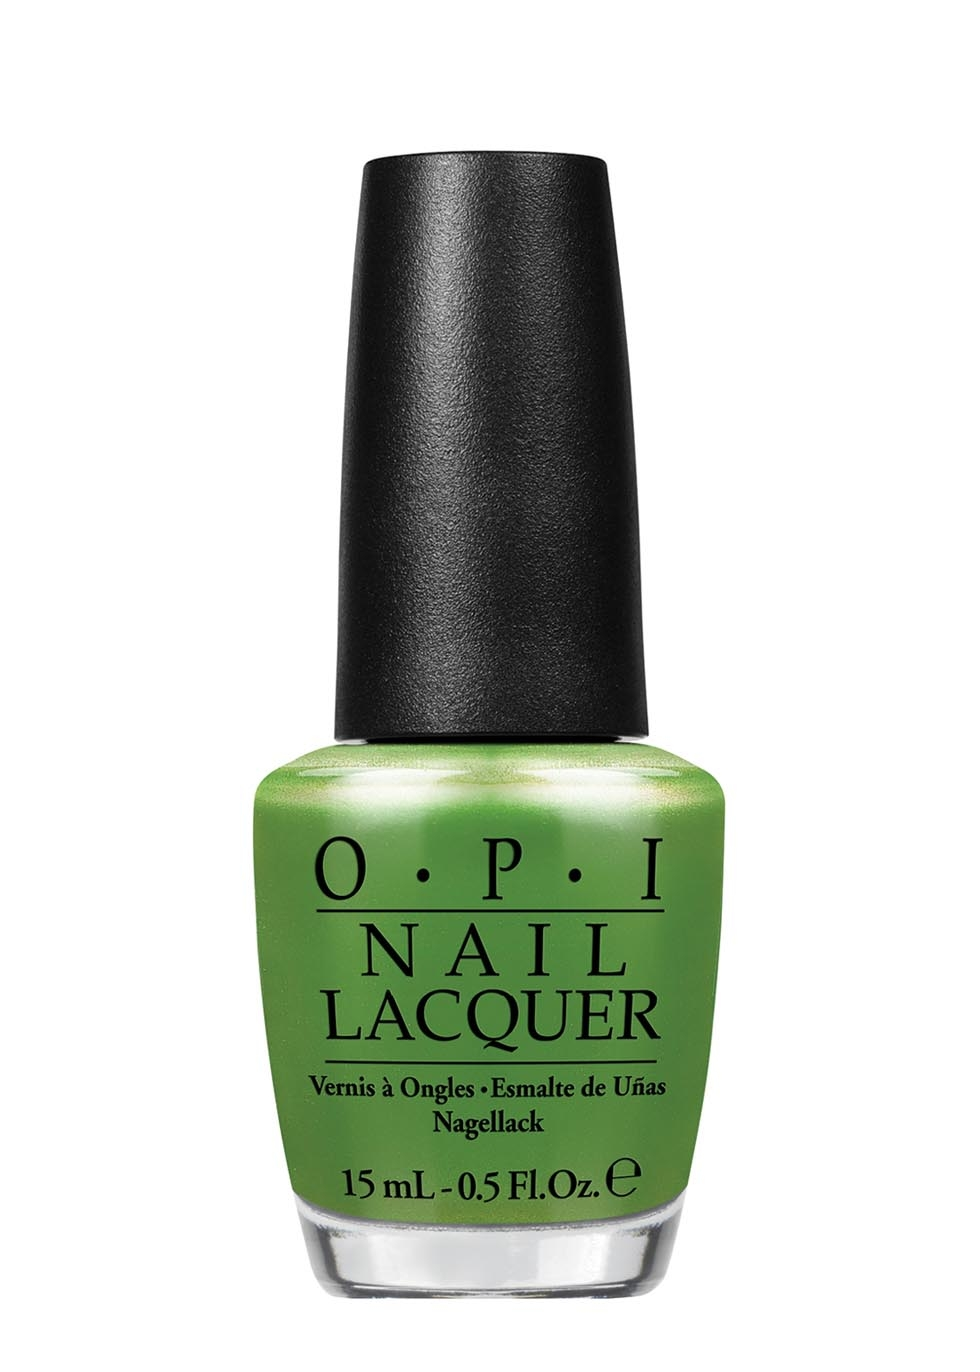 OPI nail lacquer - My Gecko Does Tricks, £12